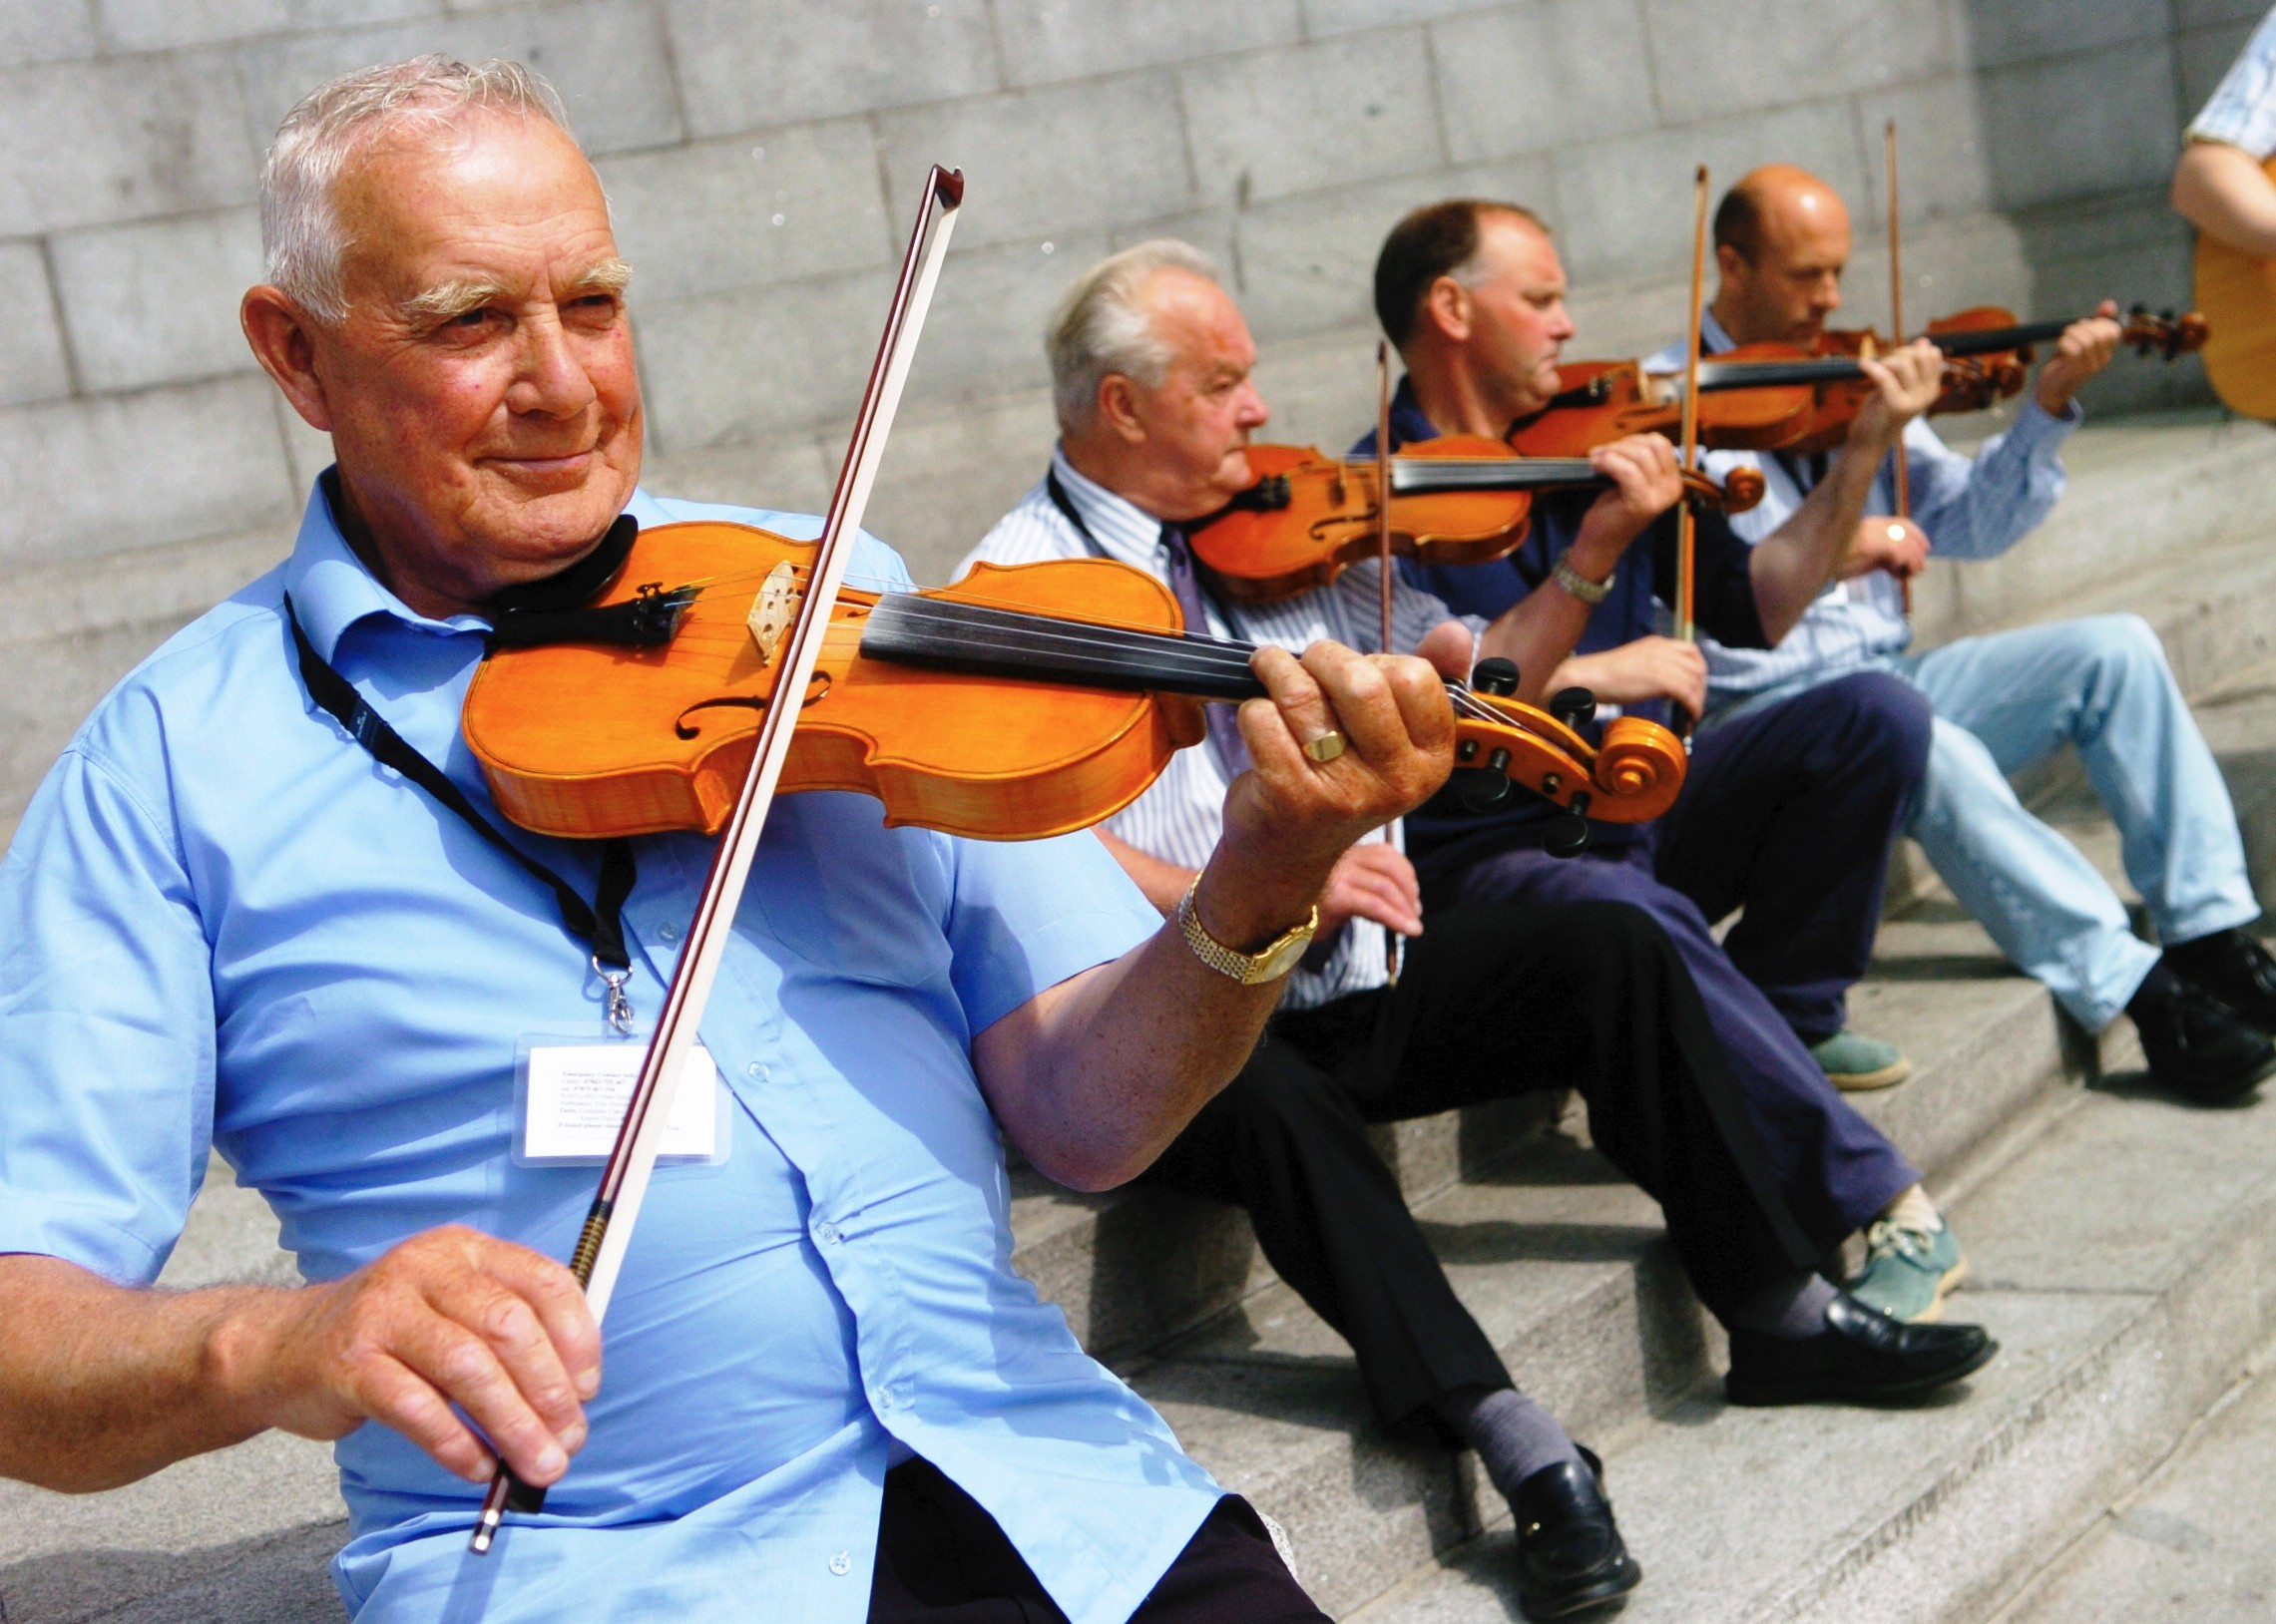 Angus Henry, John Henderson, Christopher Thomason and Danny Jamieson performing outside the Cowdray Hall for the 2006 North Atlantic Fiddle Convention. Picture by Peter Anderson